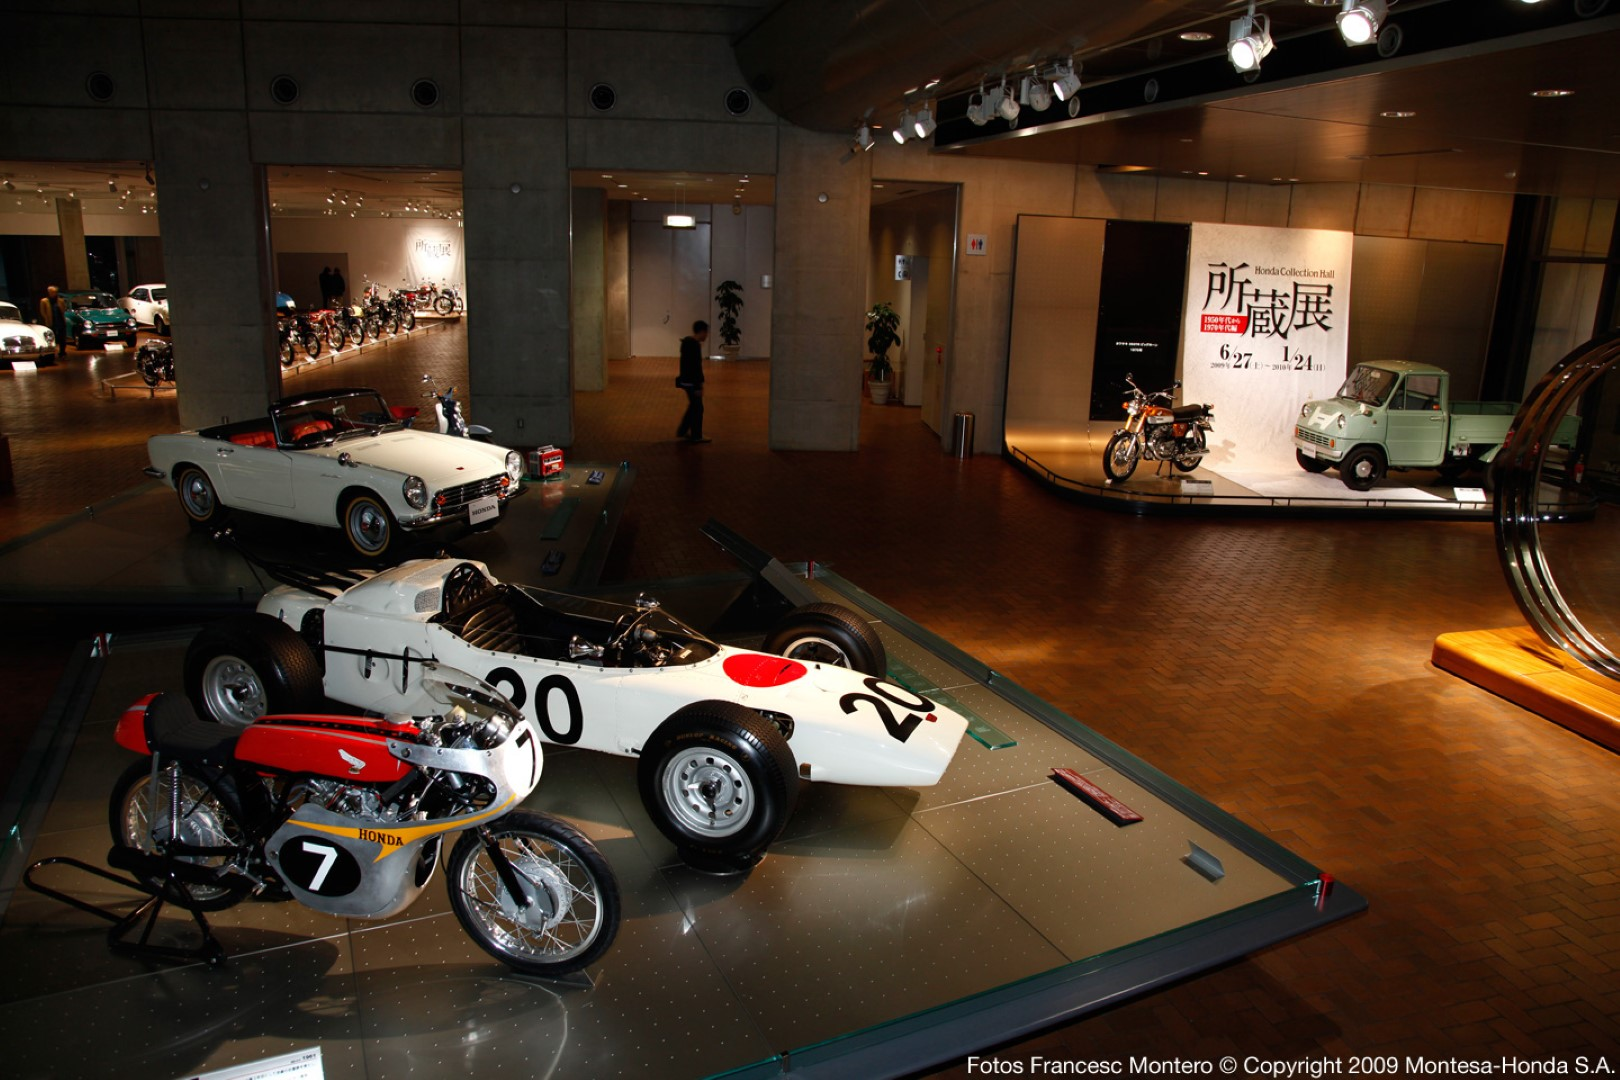 Visita virtual al museo Honda Collection Hall desde casa